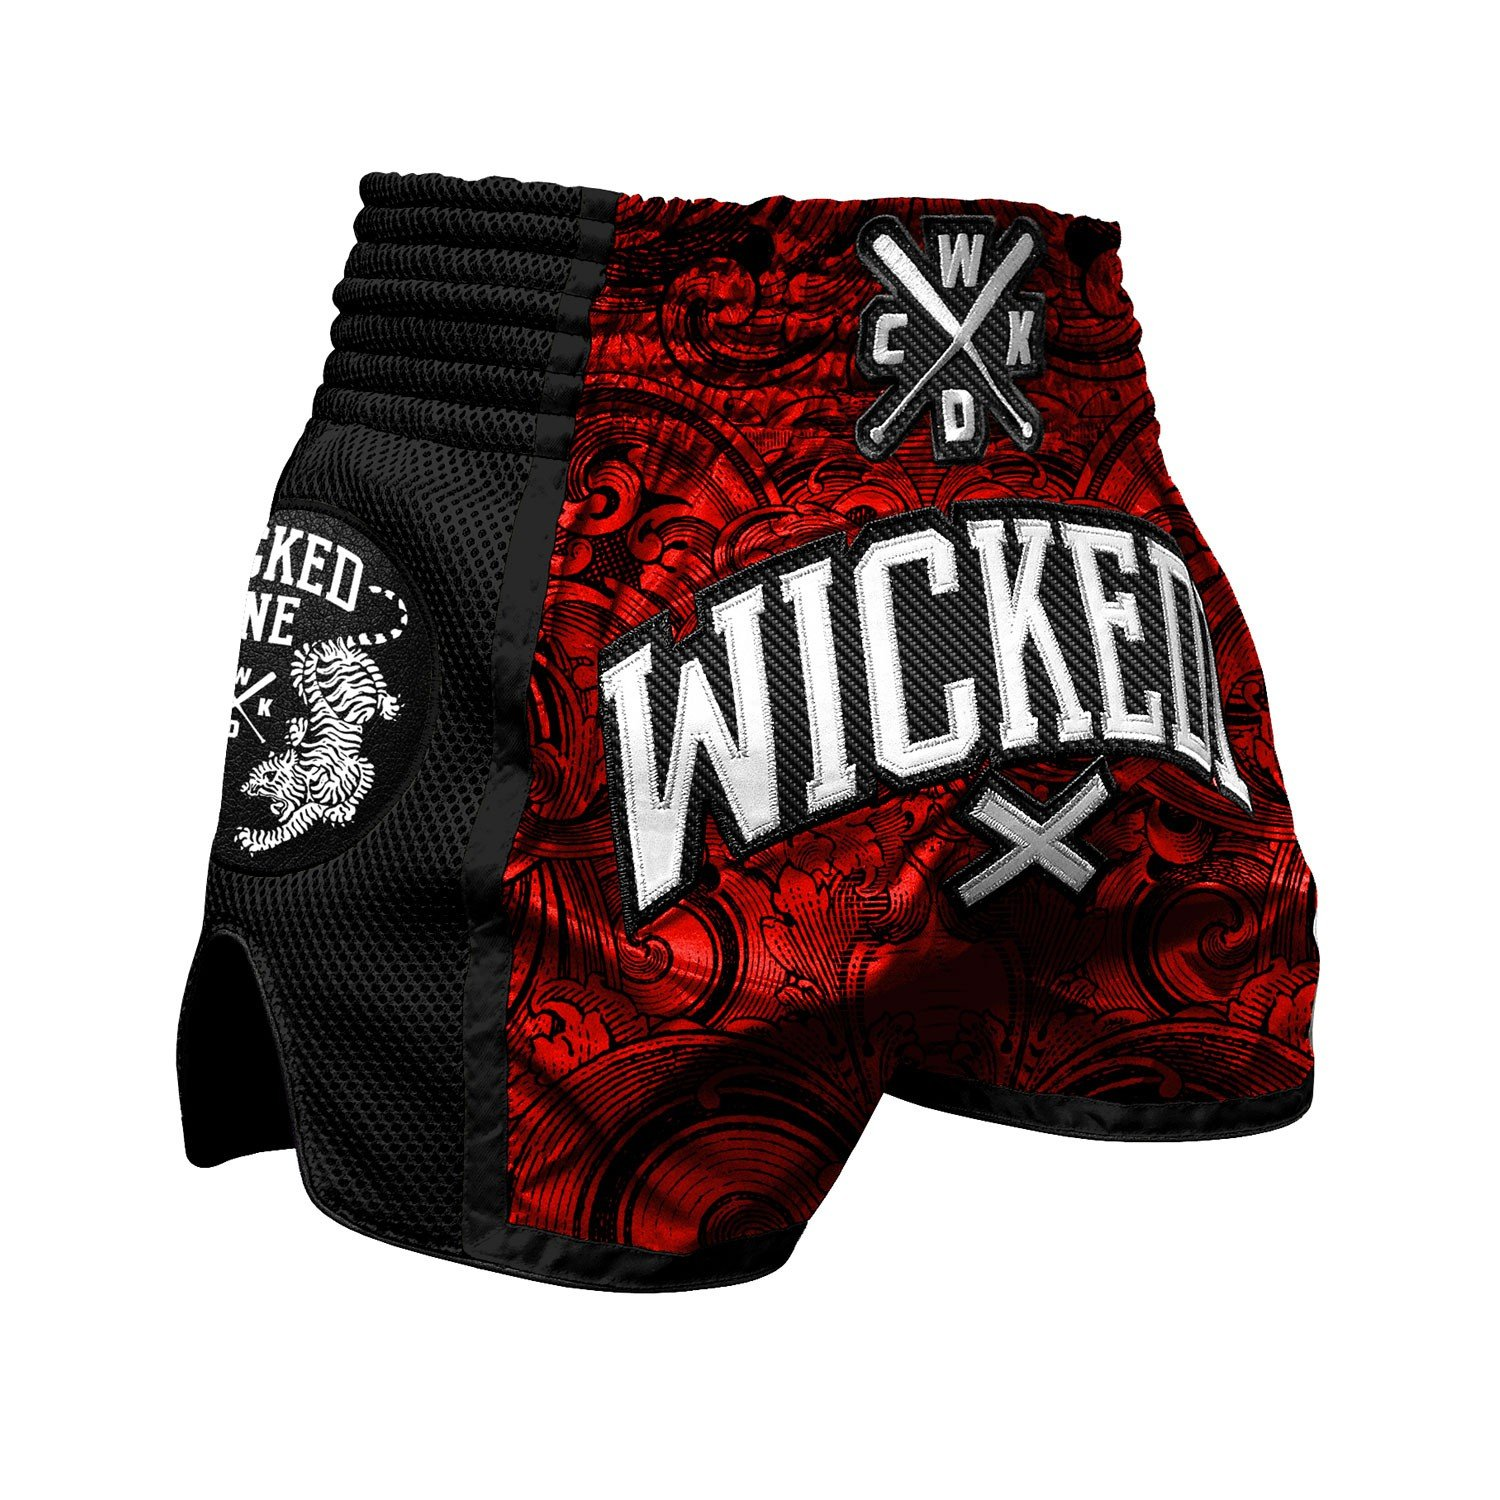 wicked One Muay Thai Short Rude – Rouge/Noir – Muay Thai Boxe Thaï Traditionnellement Short Box Pantalon Thai